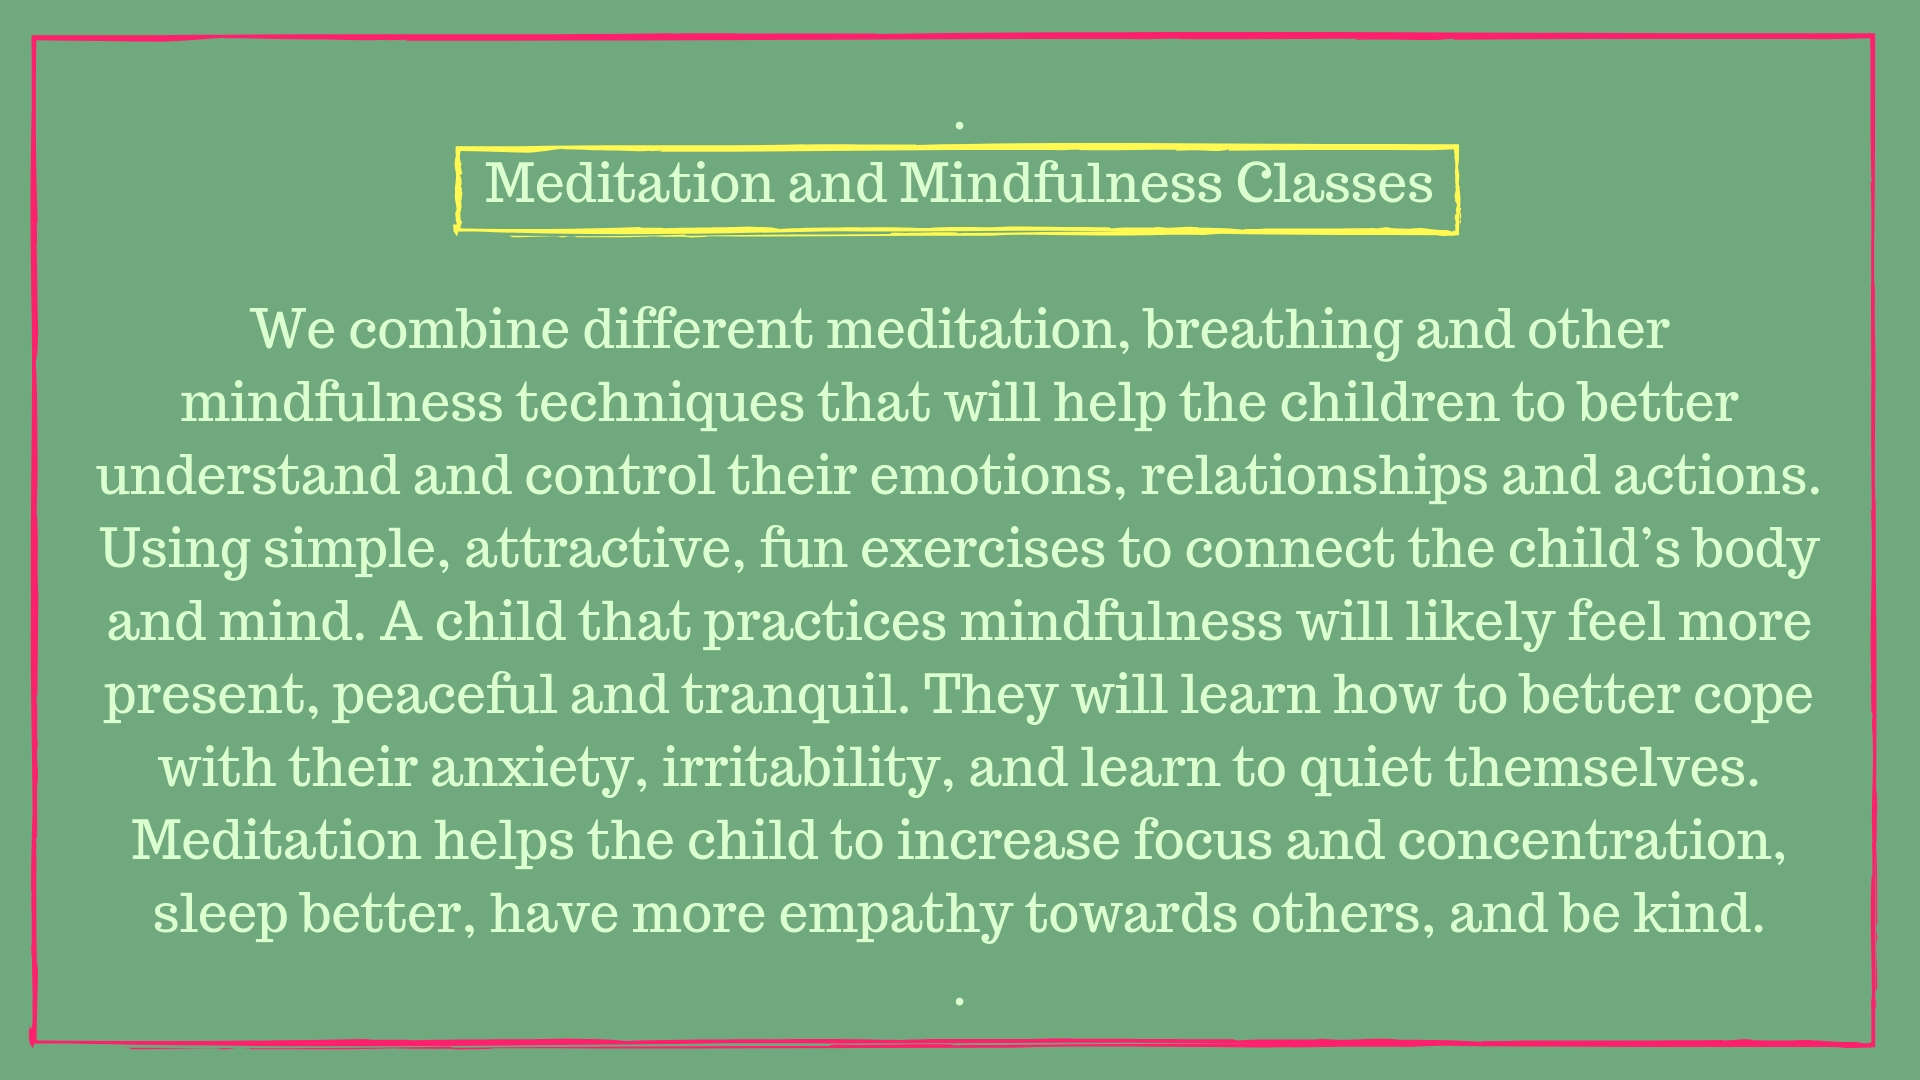 Meditation and Mindfulness ClassesWe combine different meditation, breathing and other mindfulness techniques that will help the children to better understand and control their emotions, relationships and actions. Us-3.jpg